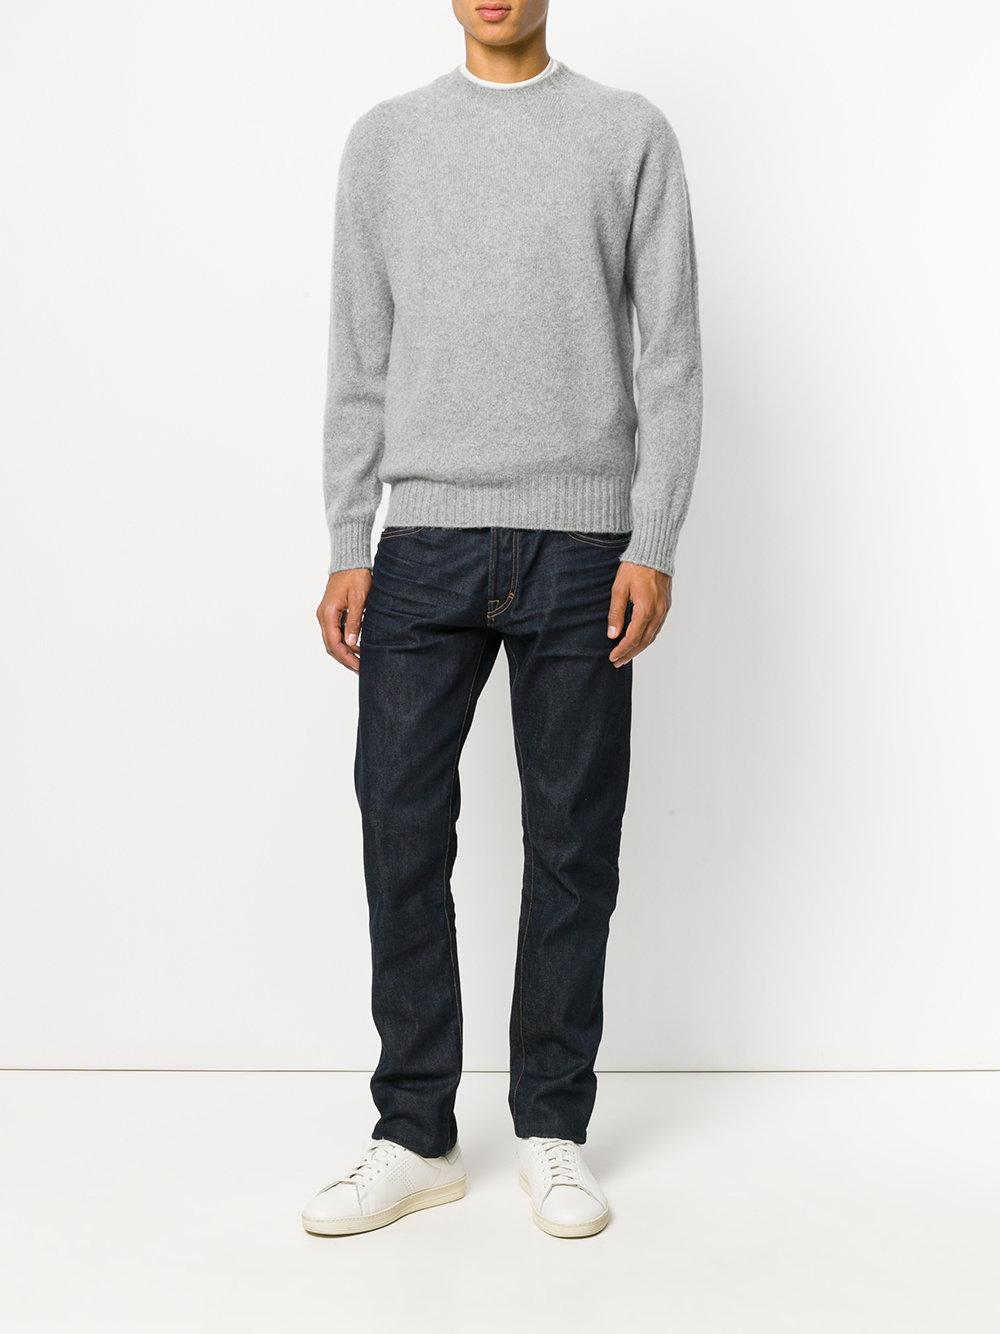 Tom Ford Cashmere Crew Neck Pullover in Grey (Grey) for Men